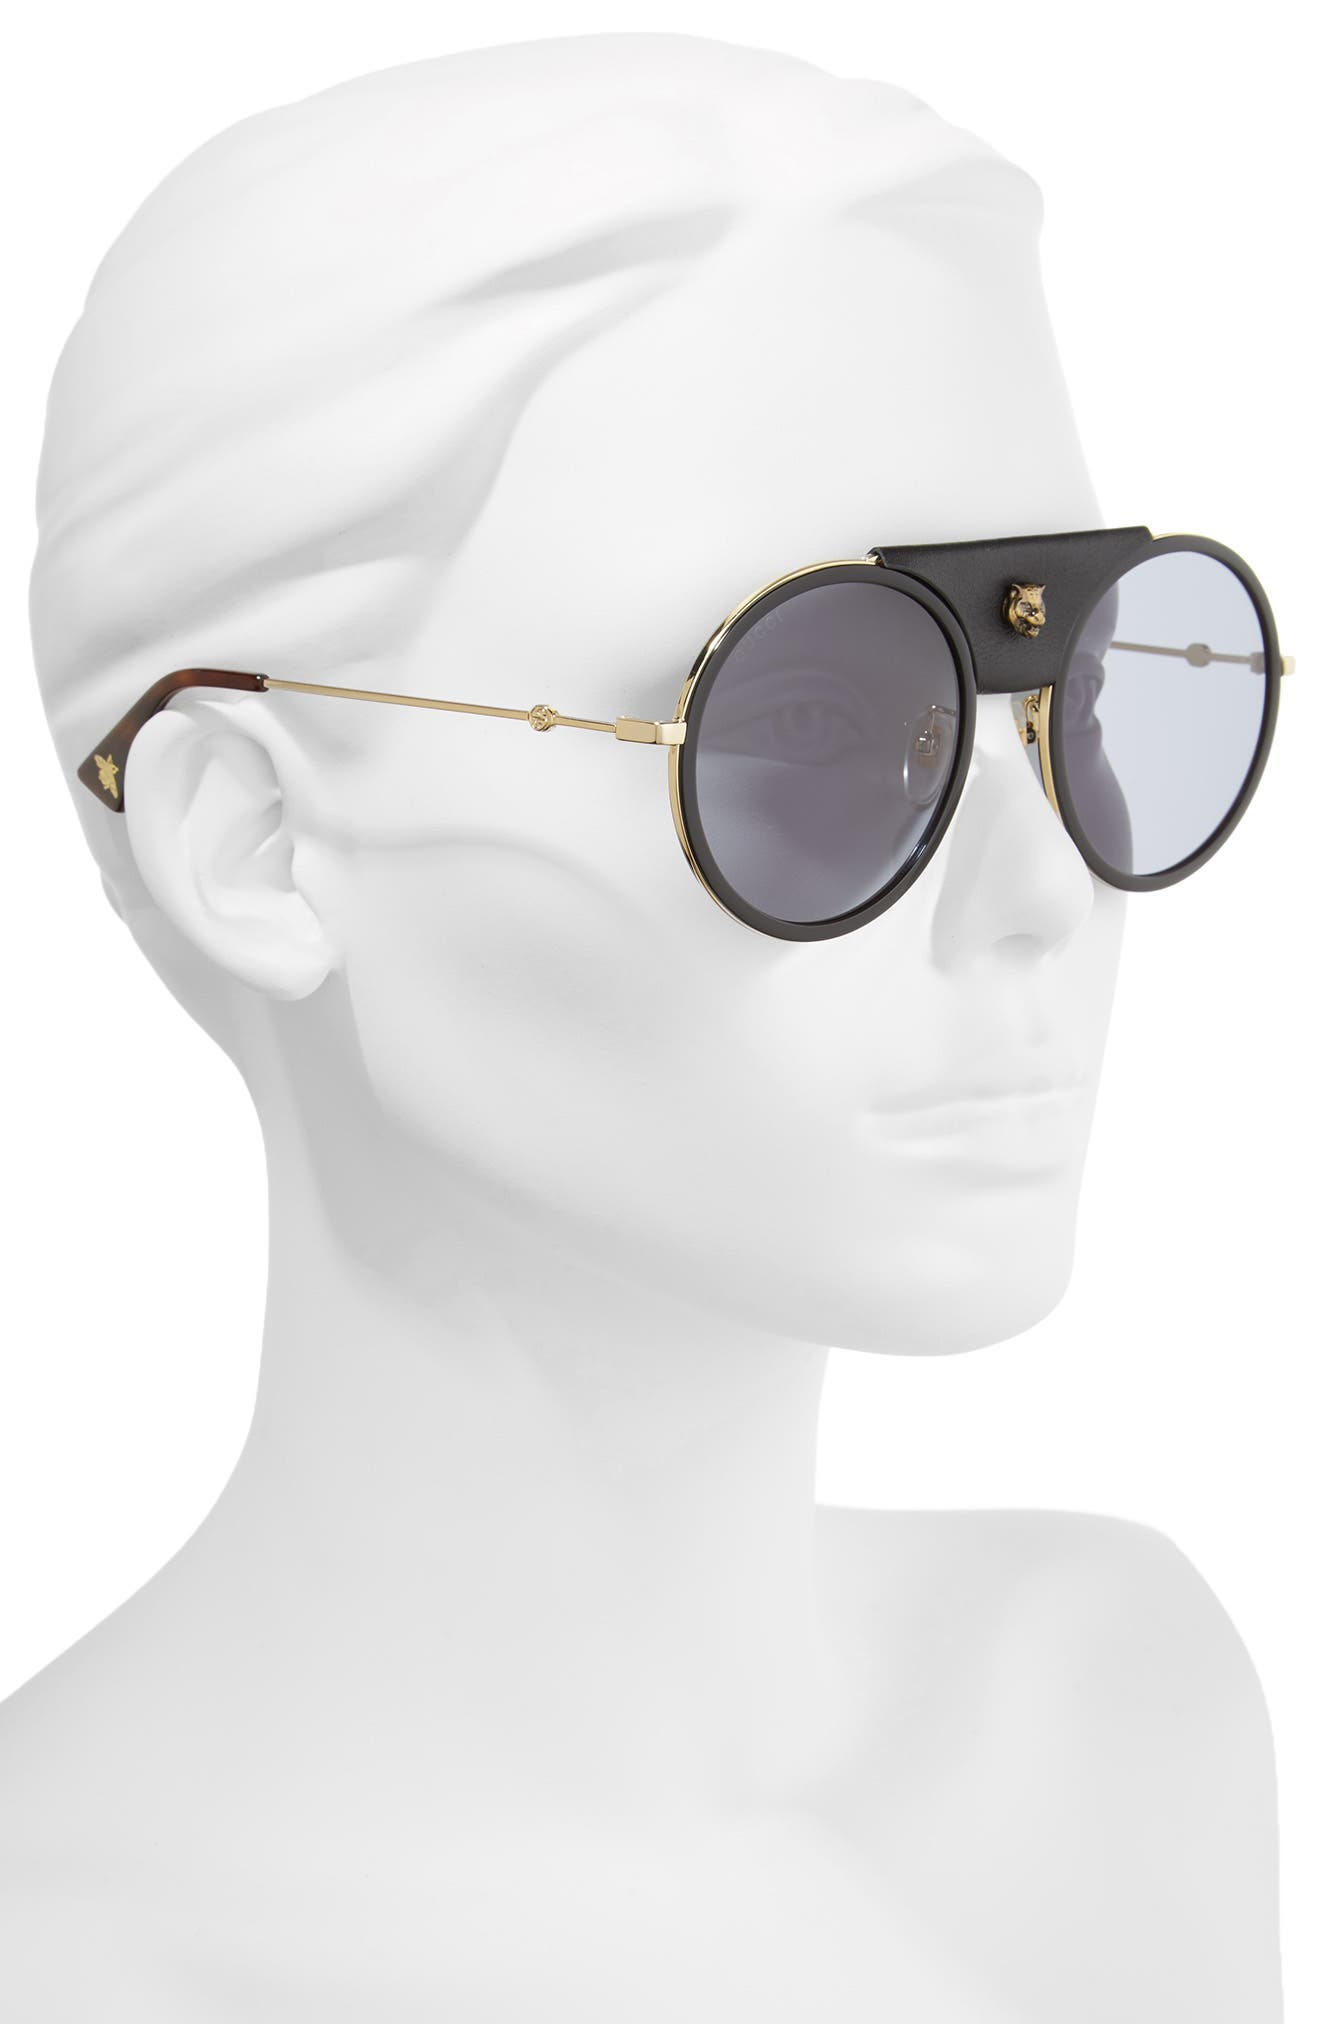 Alternate Image 2  - Gucci 56mm Leather Bridge Aviator Sunglasses